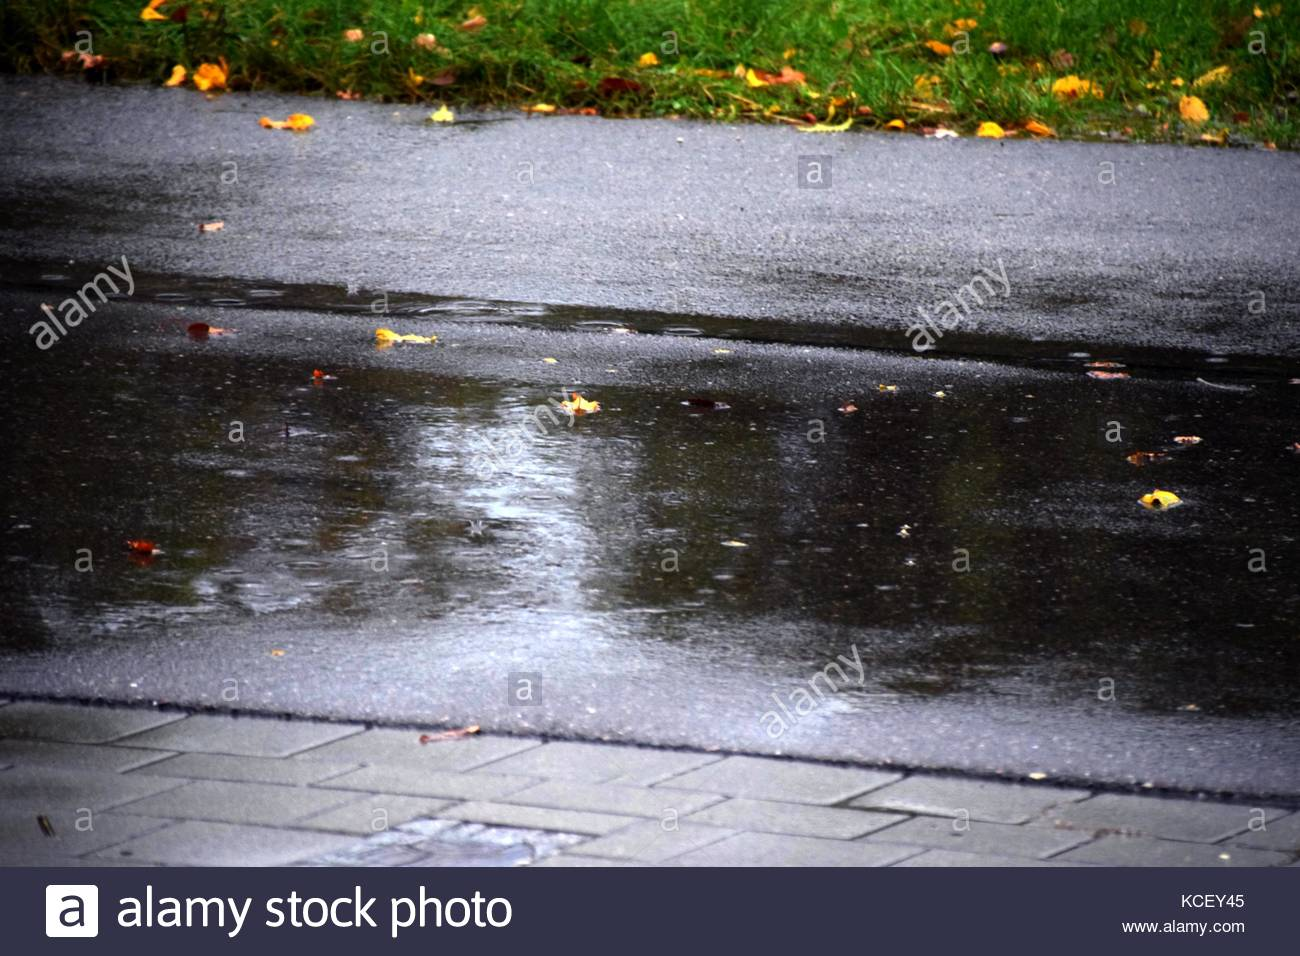 heavy rain on a road in autumn with fallen colorful leaves, water is on the road - Stock Image